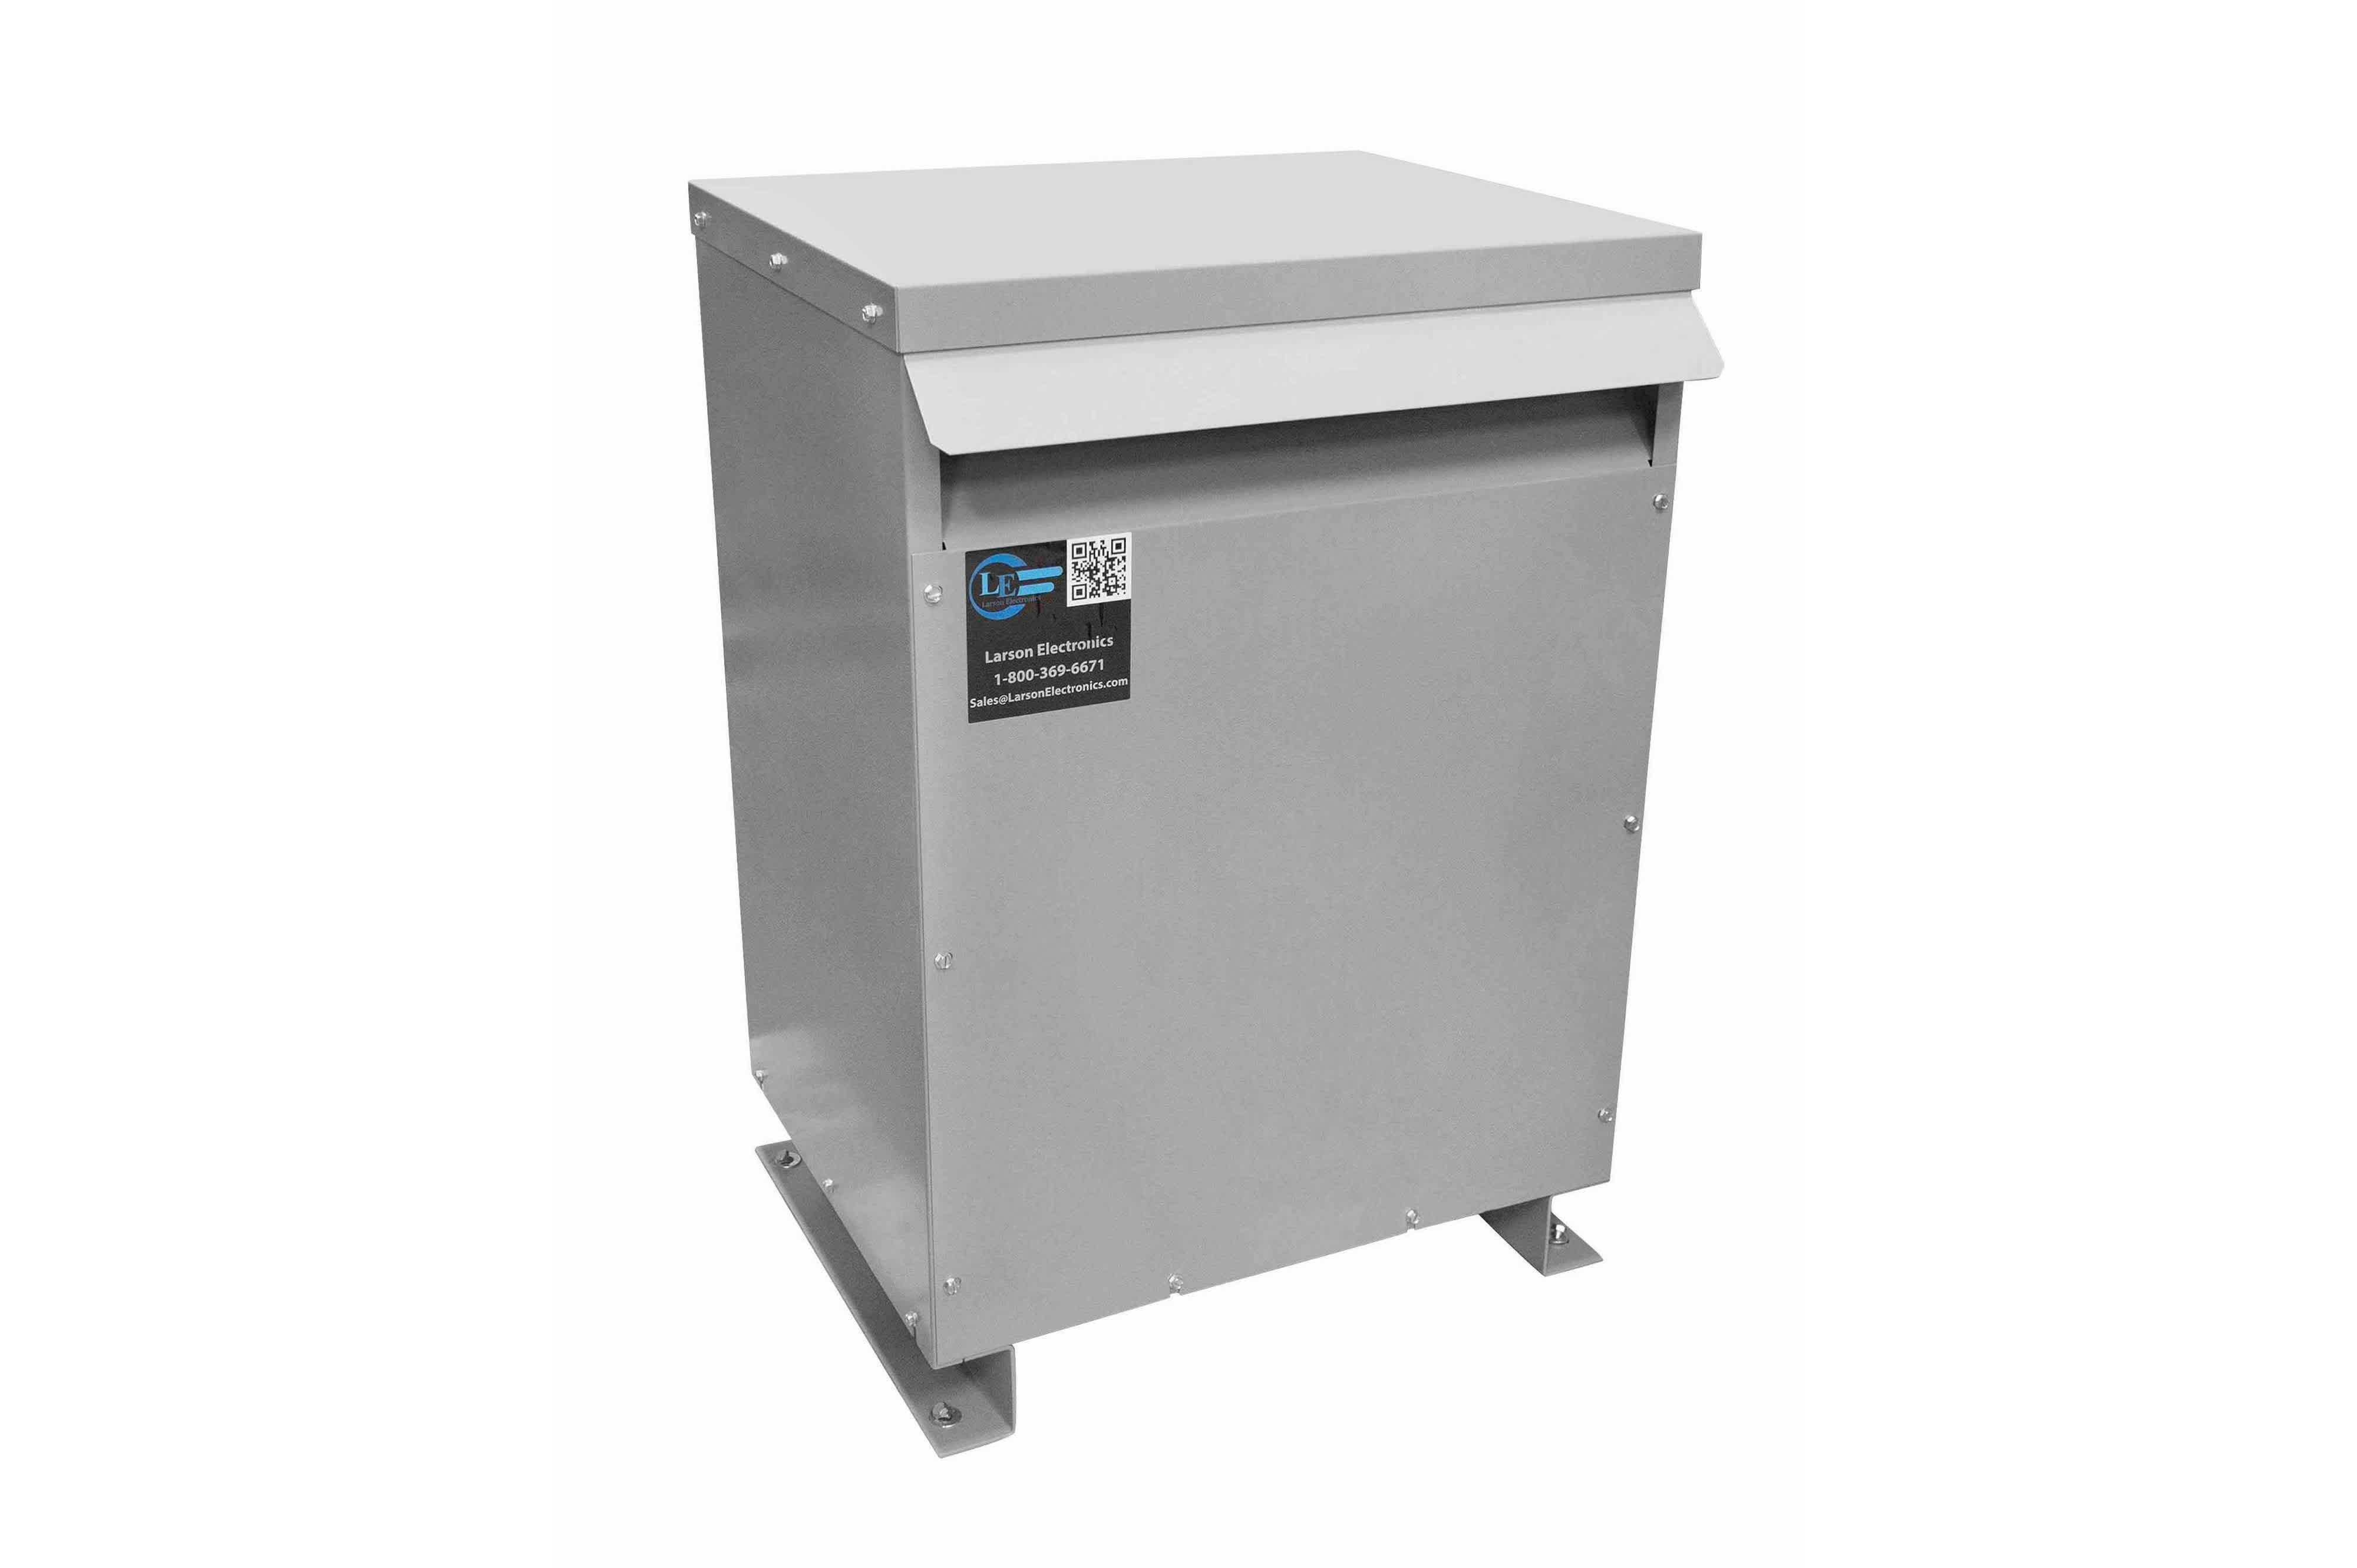 22.5 kVA 3PH Isolation Transformer, 208V Wye Primary, 415V Delta Secondary, N3R, Ventilated, 60 Hz